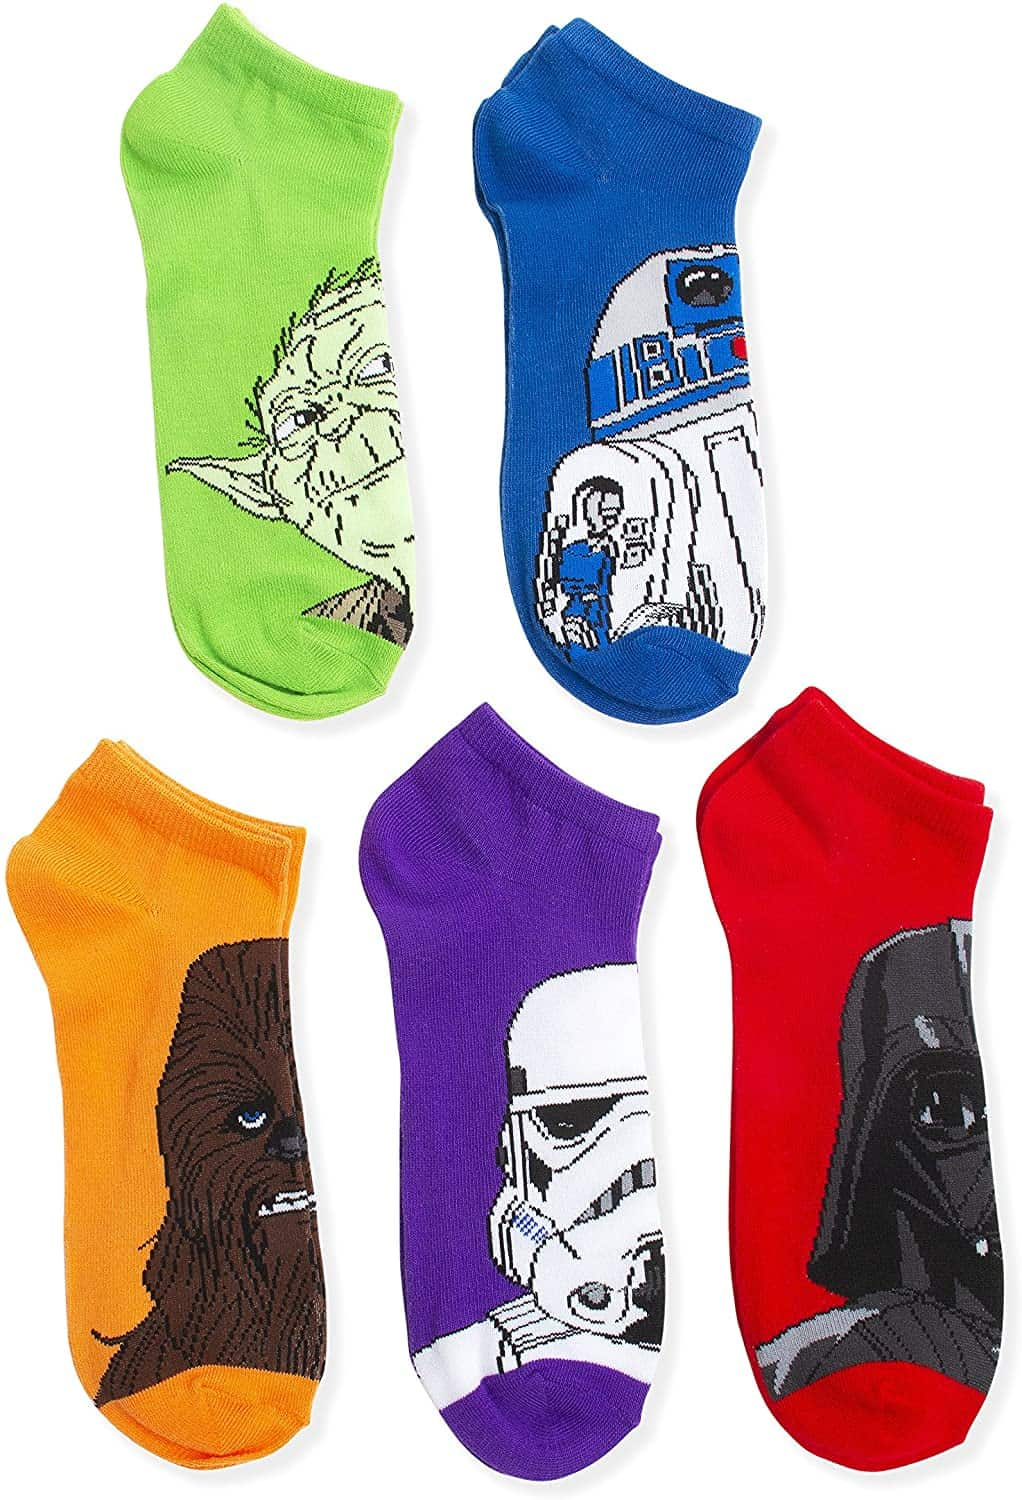 Star War Men's Socks